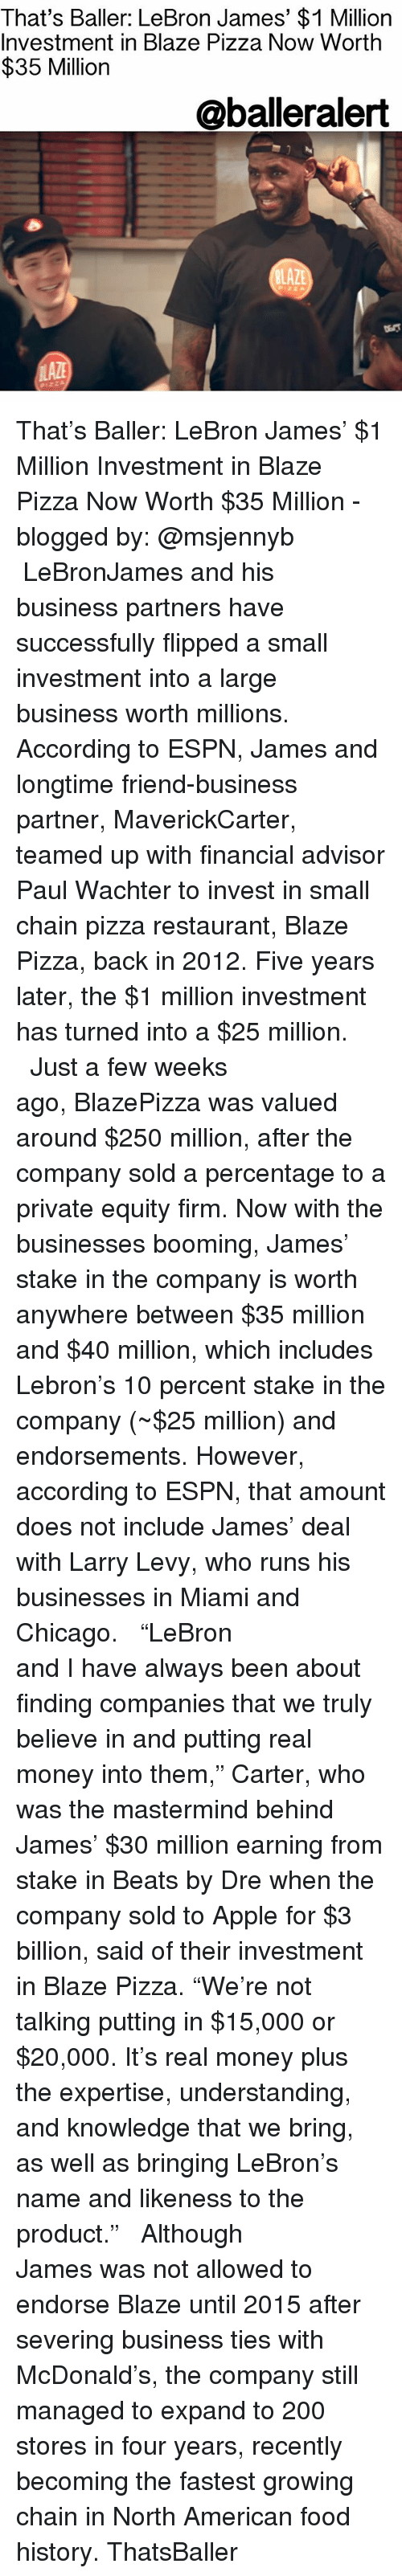 """Apple, Bailey Jay, and Beats by Dre: That's Baller: LeBron James' $1 Million  Investment in Blaze Pizza Now Worth  $35 Milliorn  @balleralert  LAZE That's Baller: LeBron James' $1 Million Investment in Blaze Pizza Now Worth $35 Million - blogged by: @msjennyb ⠀⠀⠀⠀⠀⠀⠀⠀⠀ ⠀⠀⠀⠀⠀⠀⠀⠀⠀ LeBronJames and his business partners have successfully flipped a small investment into a large business worth millions. According to ESPN, James and longtime friend-business partner, MaverickCarter, teamed up with financial advisor Paul Wachter to invest in small chain pizza restaurant, Blaze Pizza, back in 2012. Five years later, the $1 million investment has turned into a $25 million. ⠀⠀⠀⠀⠀⠀⠀⠀⠀ ⠀⠀⠀⠀⠀⠀⠀⠀⠀ Just a few weeks ago, BlazePizza was valued around $250 million, after the company sold a percentage to a private equity firm. Now with the businesses booming, James' stake in the company is worth anywhere between $35 million and $40 million, which includes Lebron's 10 percent stake in the company (~$25 million) and endorsements. However, according to ESPN, that amount does not include James' deal with Larry Levy, who runs his businesses in Miami and Chicago. ⠀⠀⠀⠀⠀⠀⠀⠀⠀ ⠀⠀⠀⠀⠀⠀⠀⠀⠀ """"LeBron and I have always been about finding companies that we truly believe in and putting real money into them,"""" Carter, who was the mastermind behind James' $30 million earning from stake in Beats by Dre when the company sold to Apple for $3 billion, said of their investment in Blaze Pizza. """"We're not talking putting in $15,000 or $20,000. It's real money plus the expertise, understanding, and knowledge that we bring, as well as bringing LeBron's name and likeness to the product."""" ⠀⠀⠀⠀⠀⠀⠀⠀⠀ ⠀⠀⠀⠀⠀⠀⠀⠀⠀ Although James was not allowed to endorse Blaze until 2015 after severing business ties with McDonald's, the company still managed to expand to 200 stores in four years, recently becoming the fastest growing chain in North American food history. ThatsBaller"""